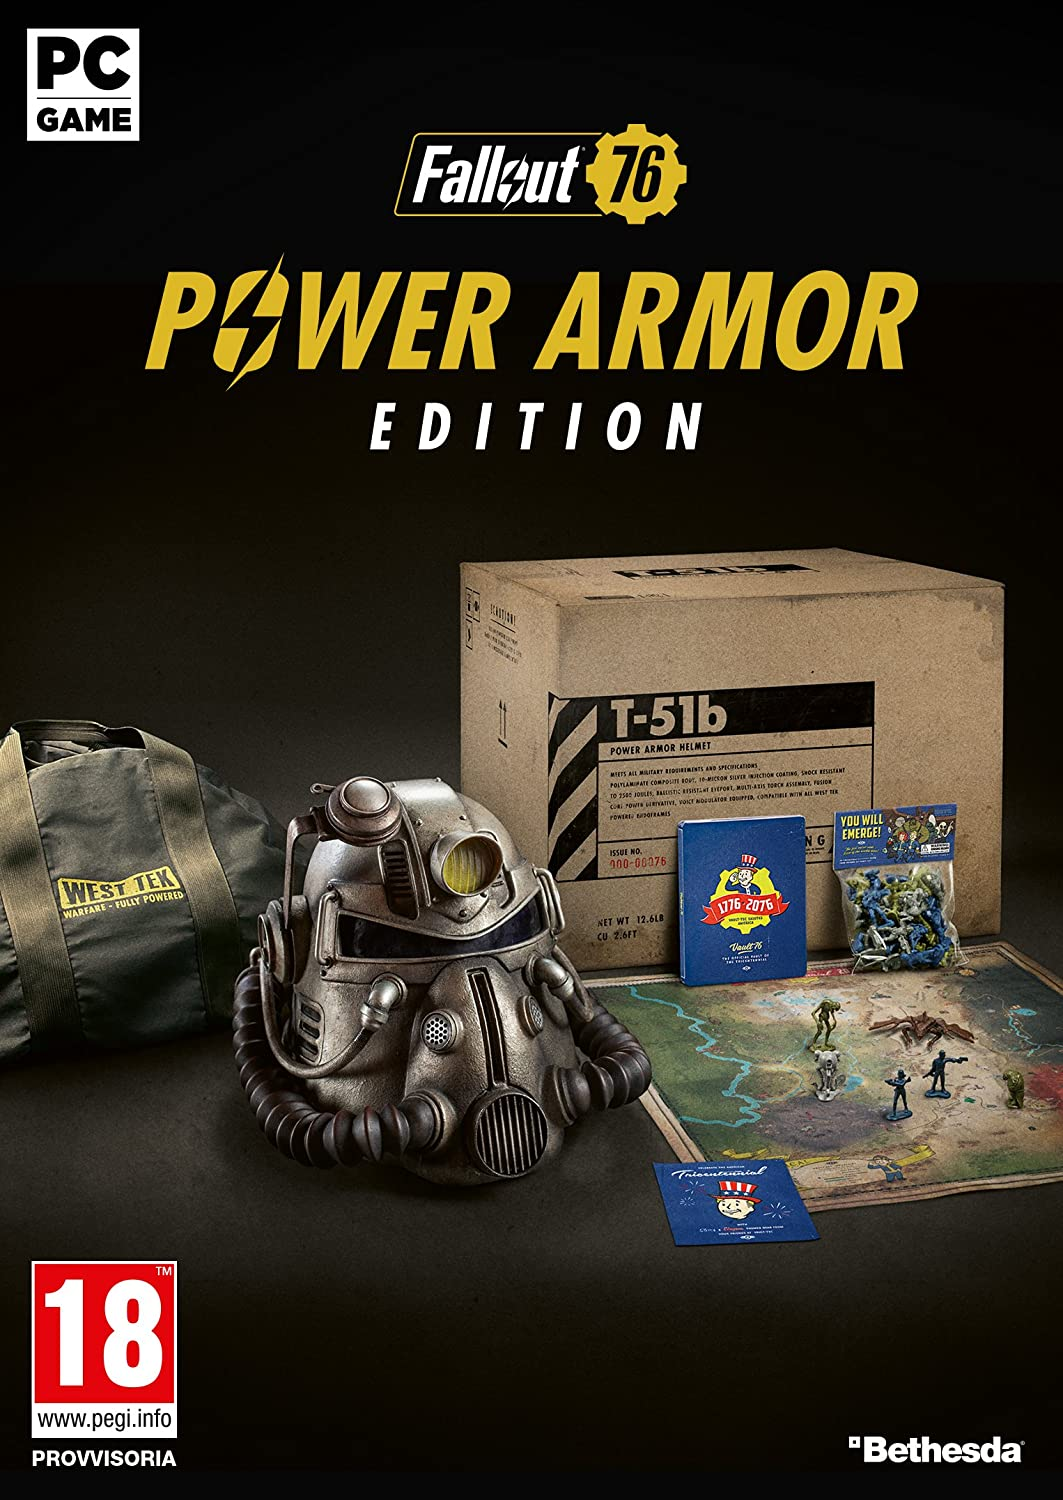 Fallout 76 - T-51b Power Armor Edition - PC: Amazon co uk